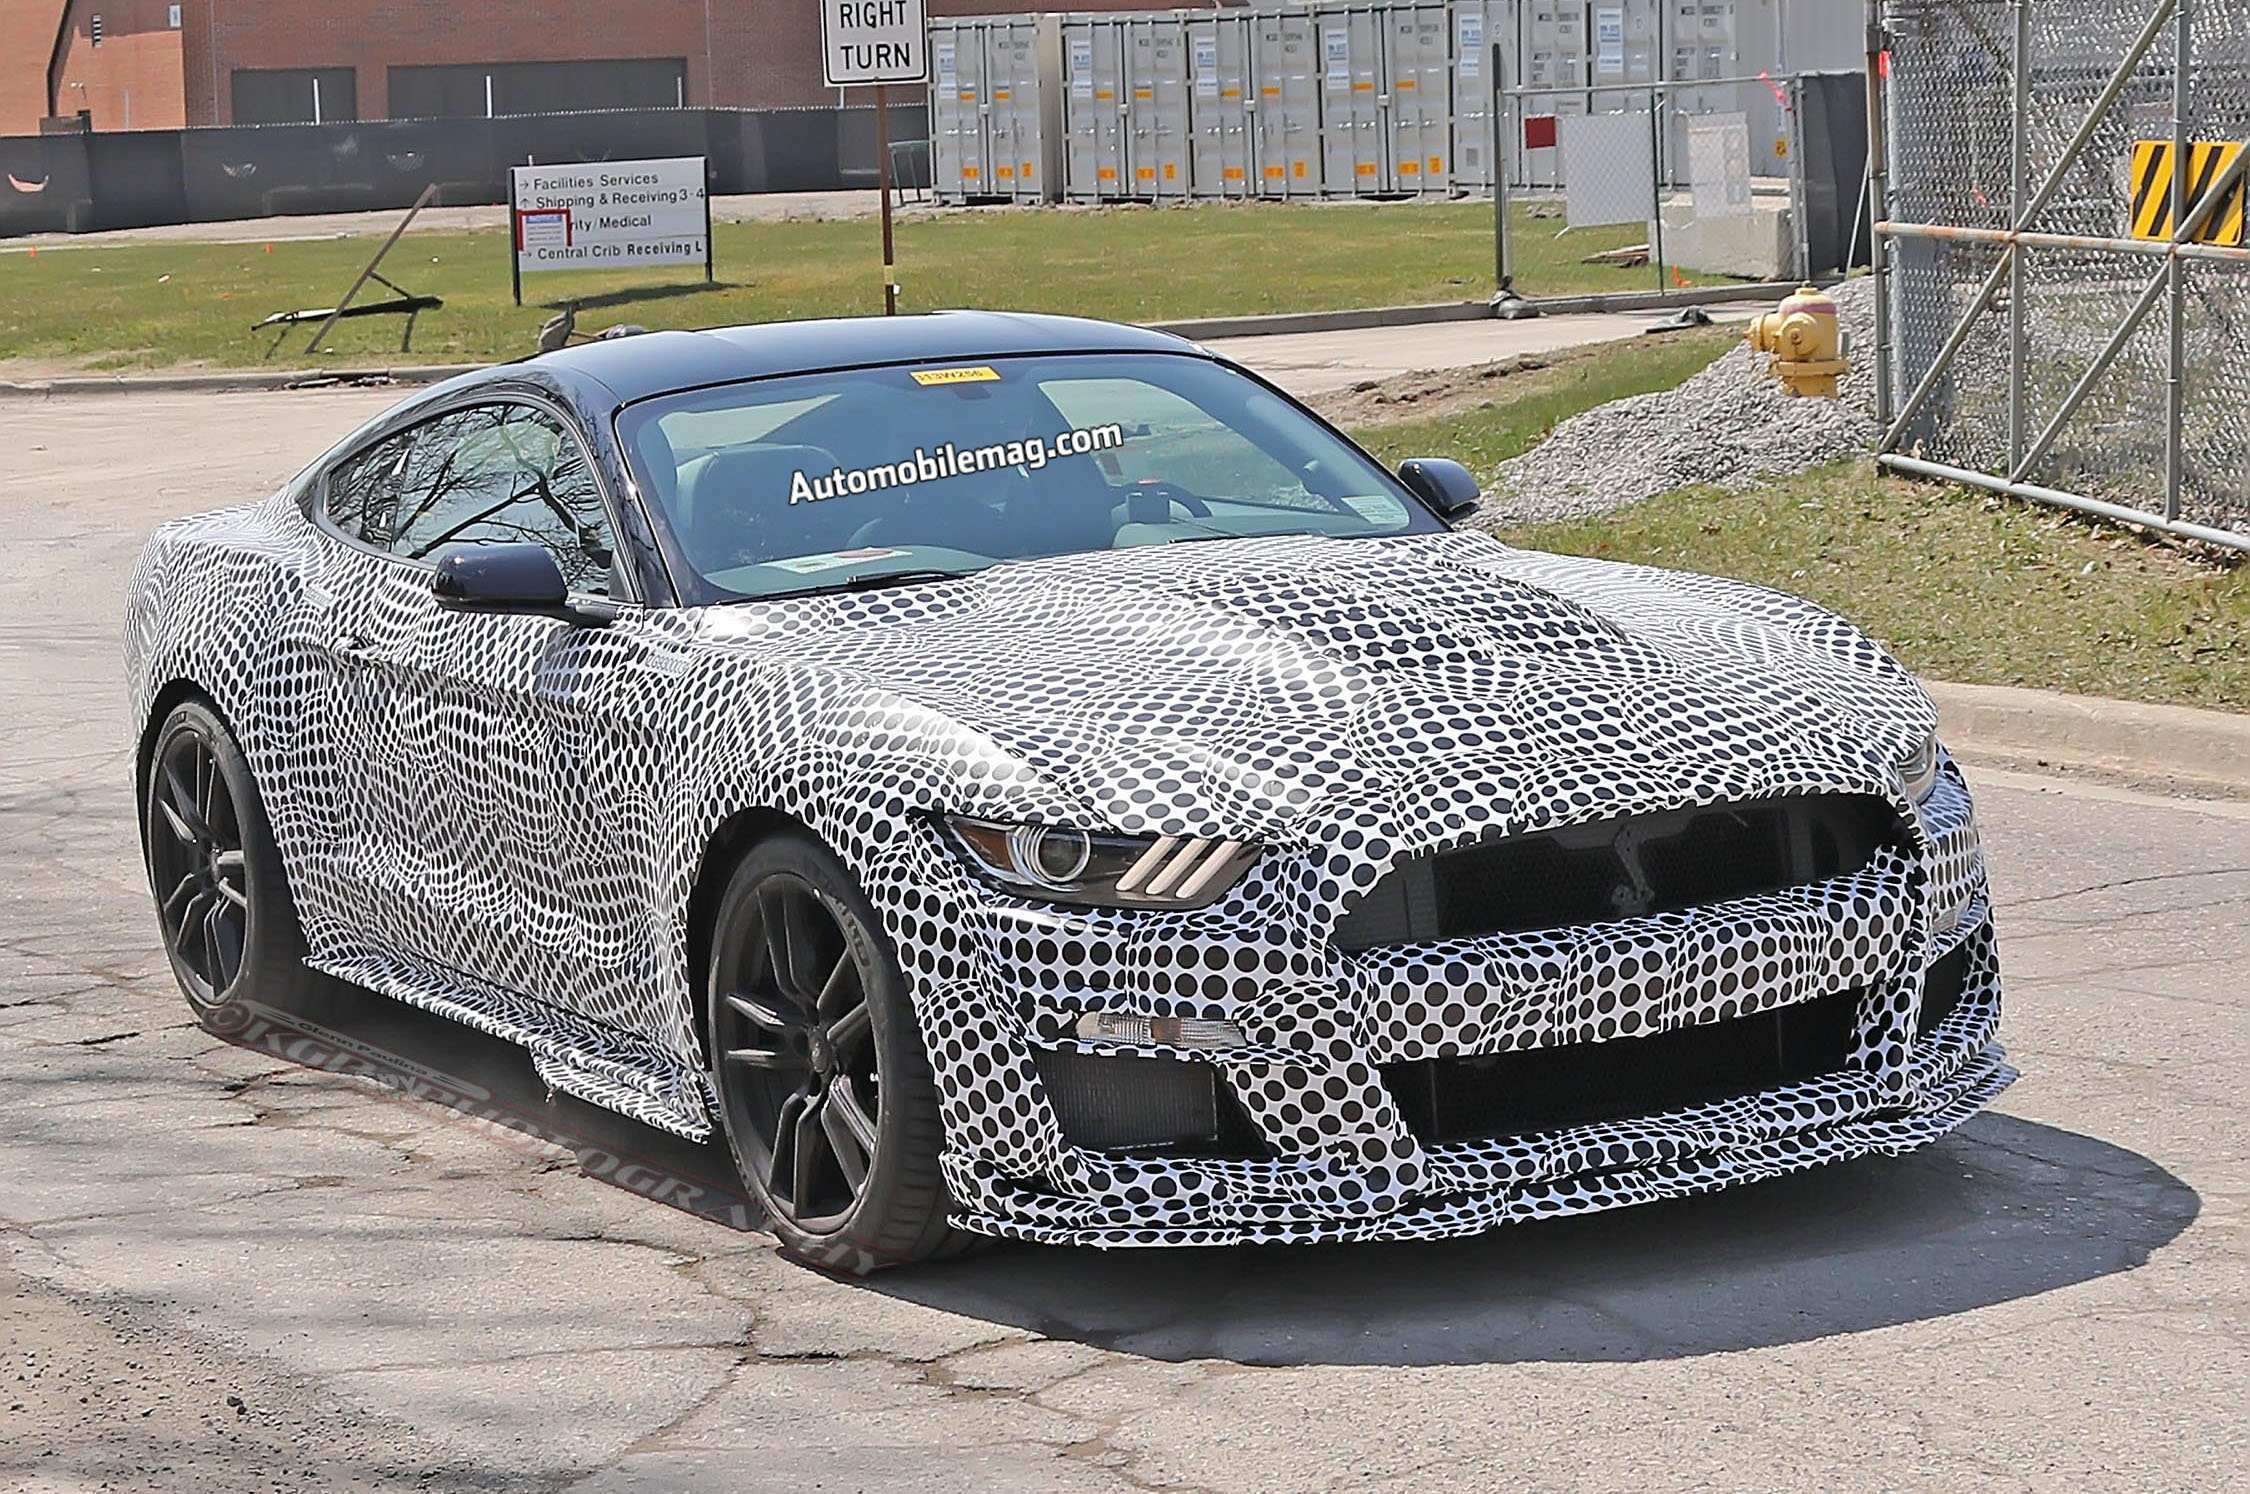 66 Great Spy Shots 2020 Ford Mustang Svt Gt 500 New Review for Spy Shots 2020 Ford Mustang Svt Gt 500